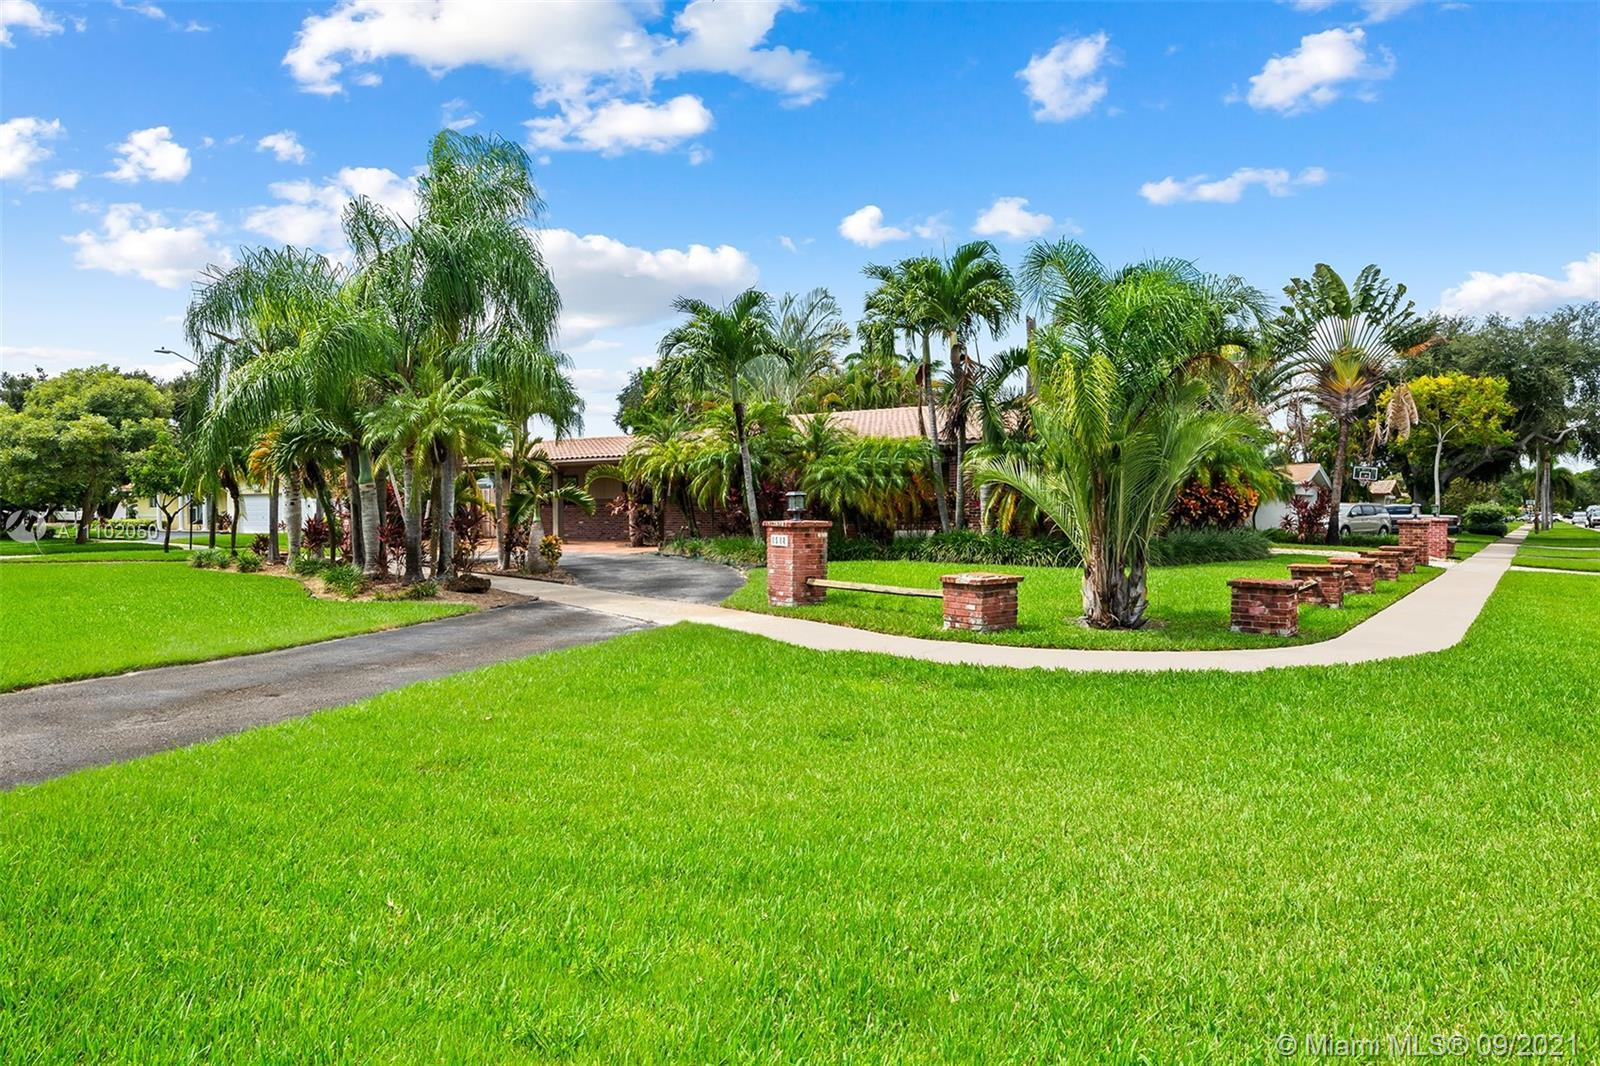 Spacious and private Hollywood Hills oasis! This beautiful 3 bedroom / 2 bathroom Hollywood Hills ho